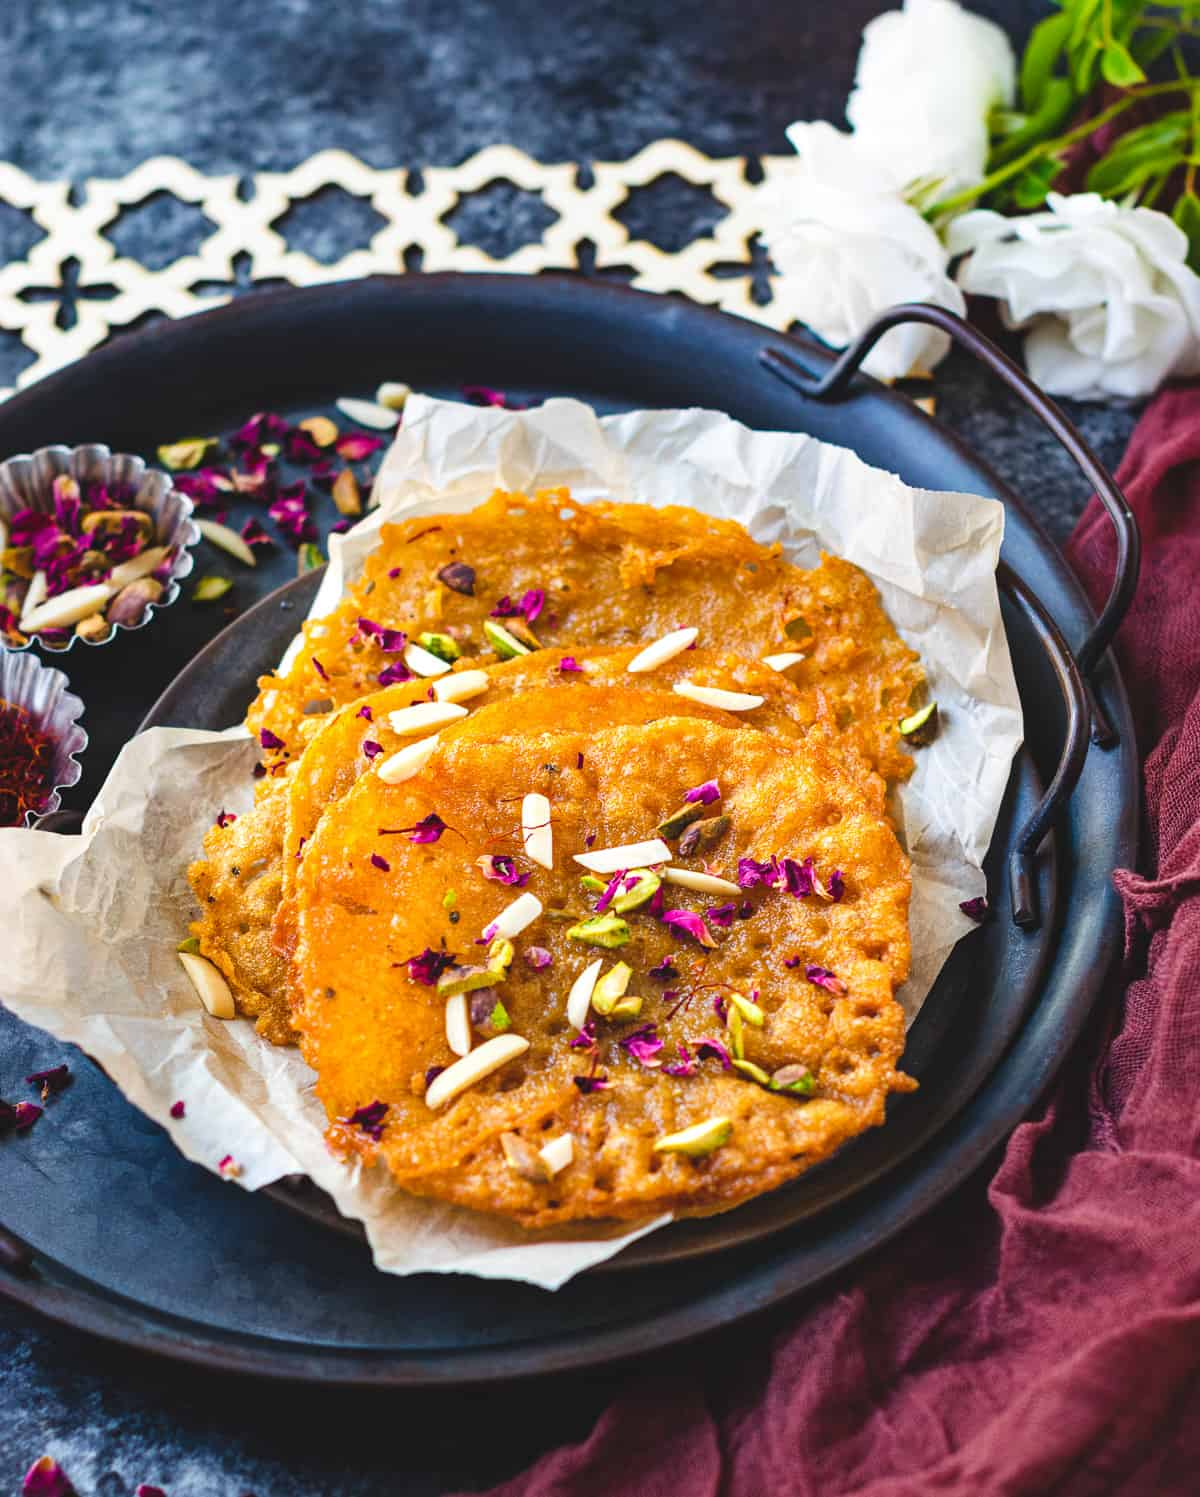 Malpuas on a platter with saffron, rose petals and nuts on the top